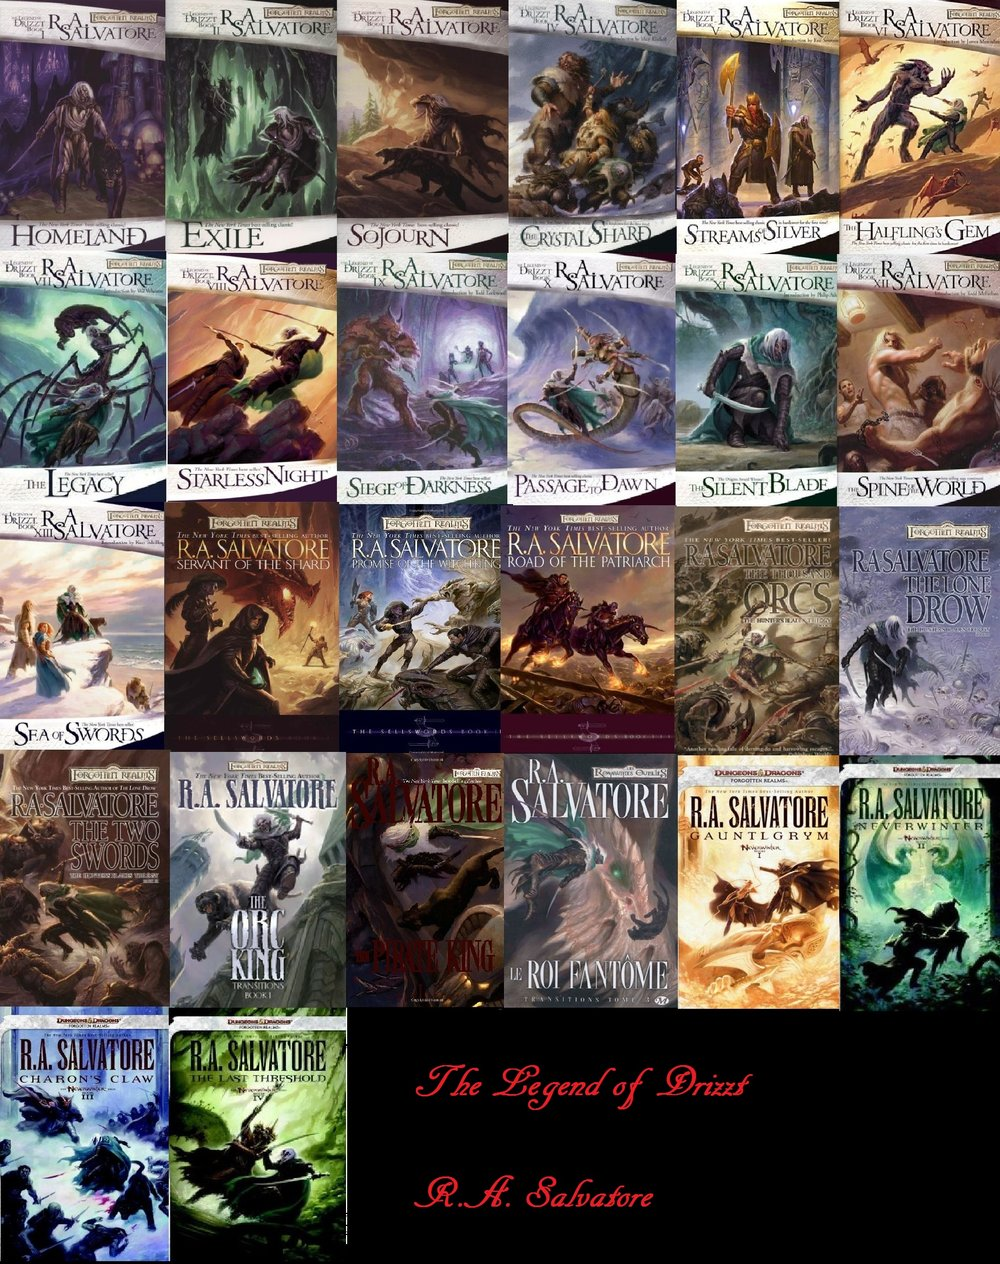 Special thanks to the person who uploaded this graphic to the internet, though there are even more in the Legend of Drizzt!